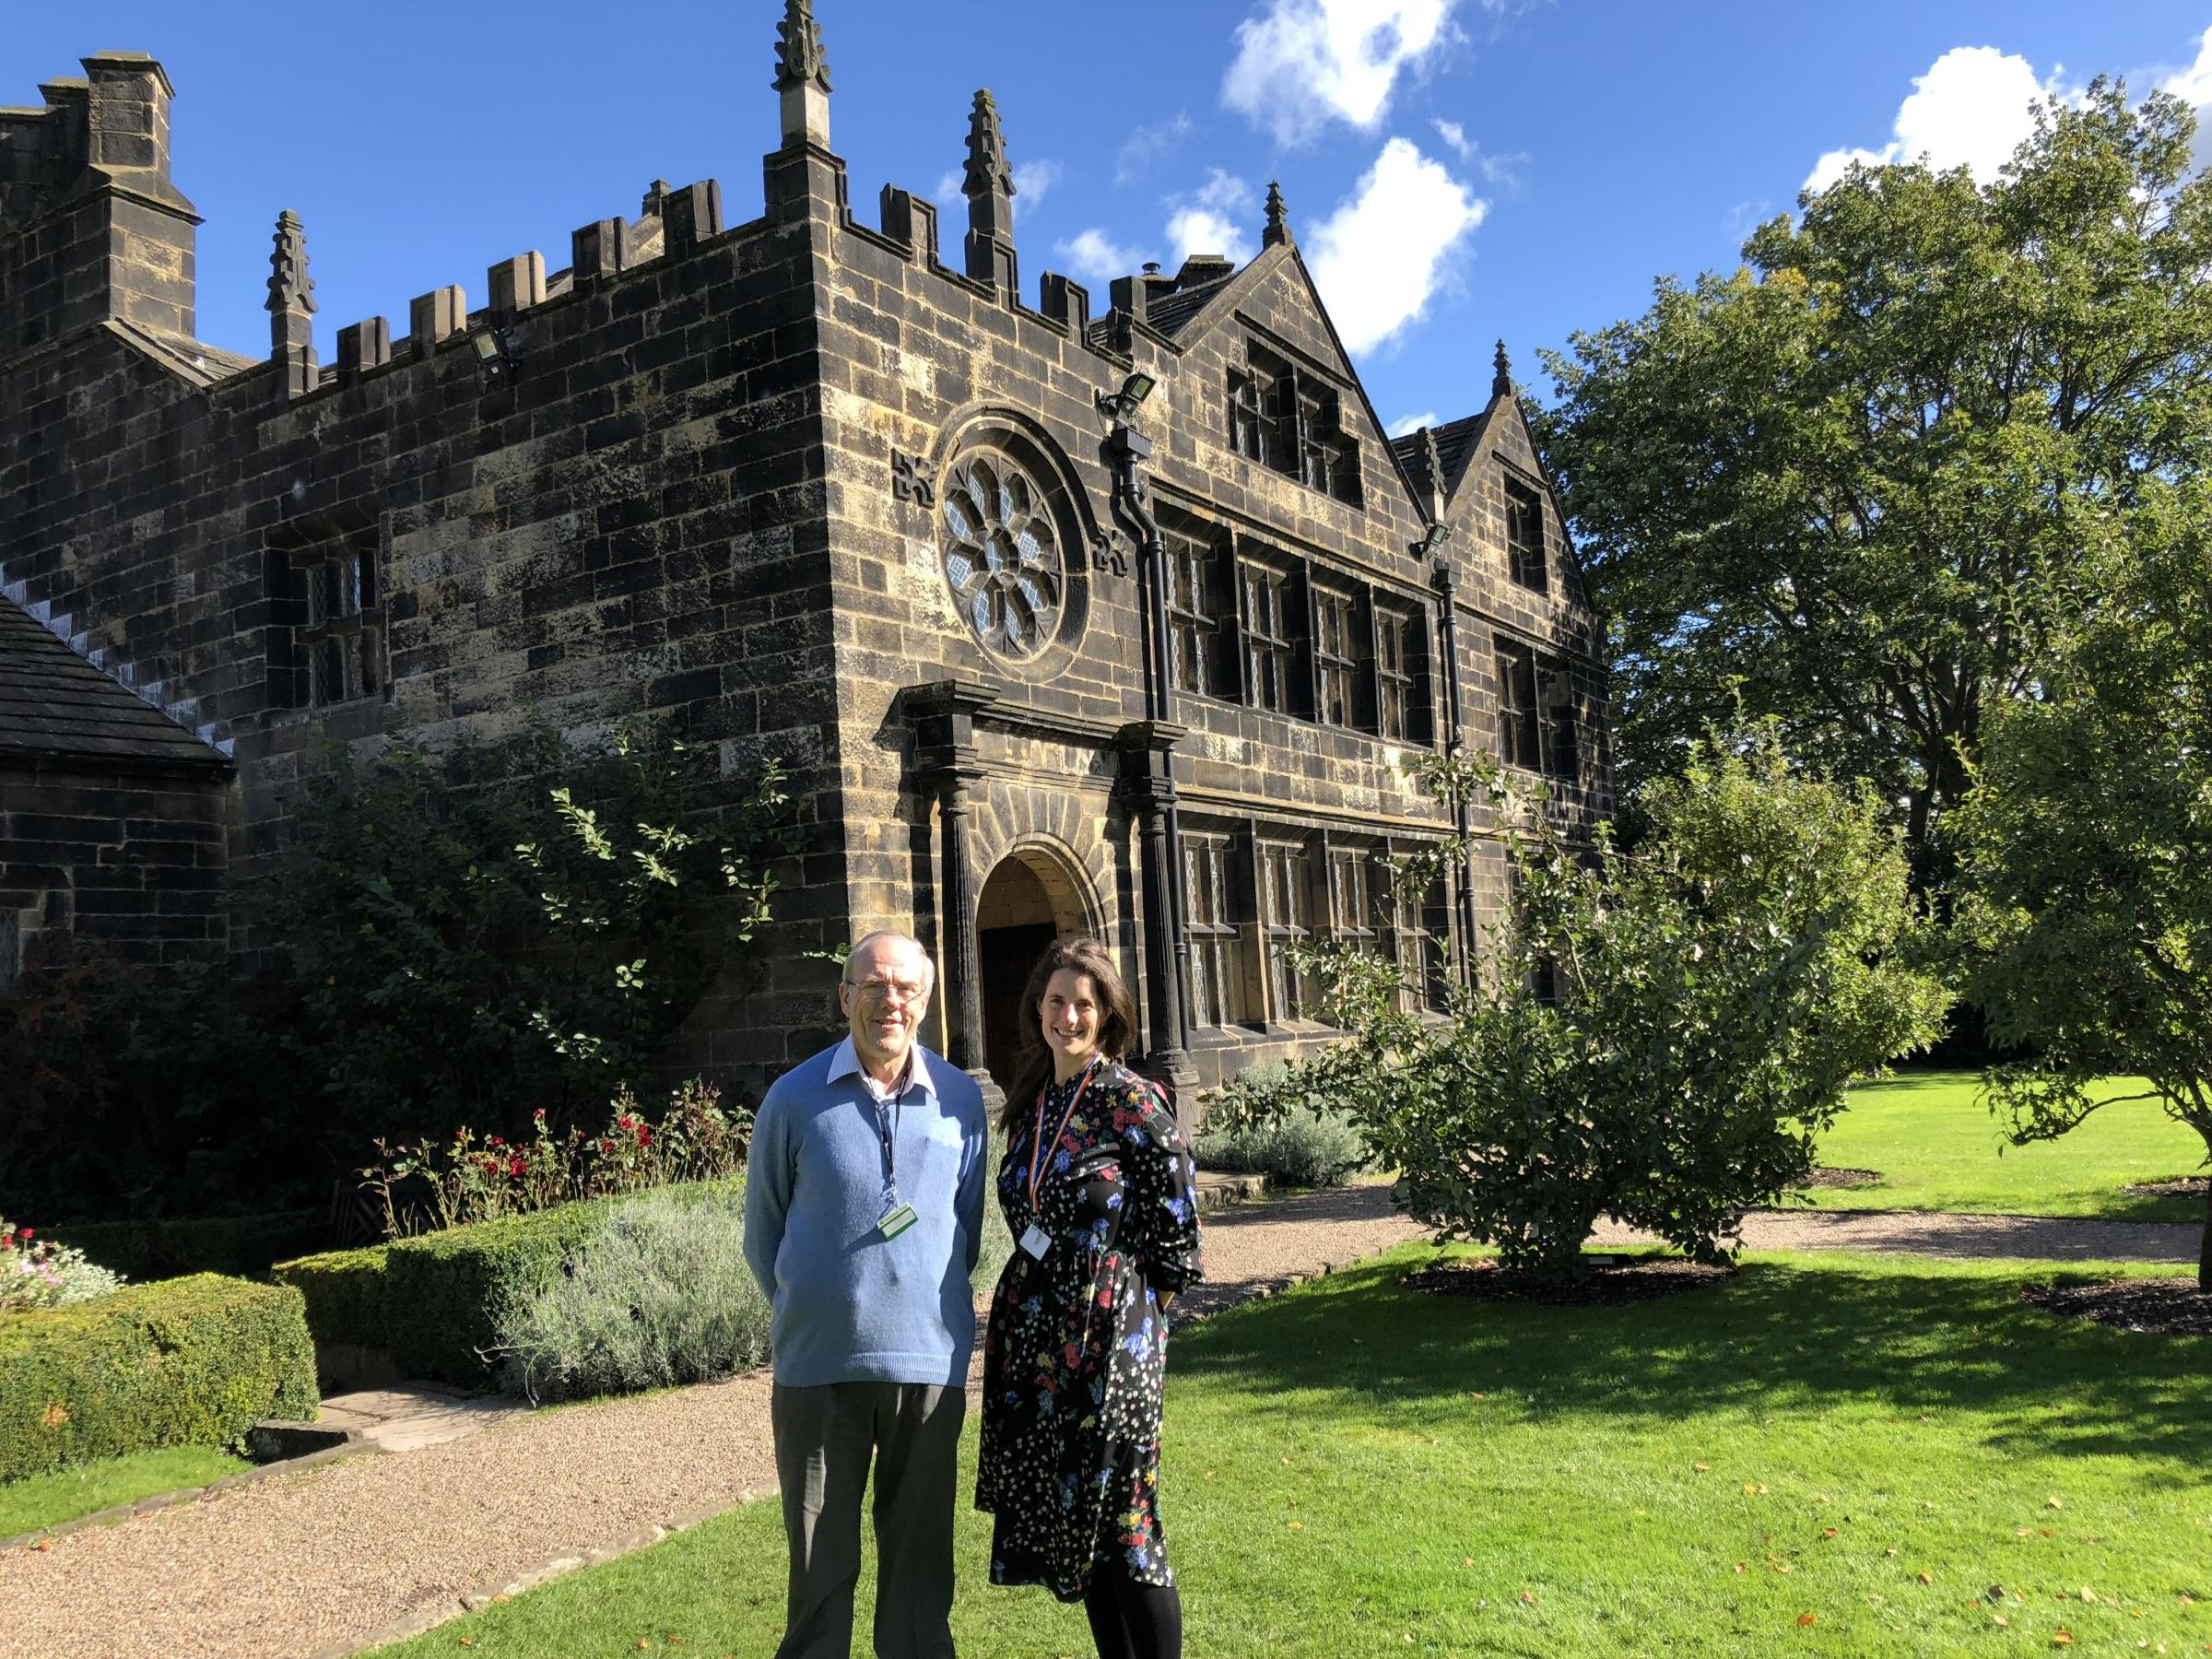 Stephen Webb outside East Riddlesden Hall where he has been a volunteer for 30 years, with Emily Taylor, Volunteer and Community Manager. Picture by Bryan Walkden